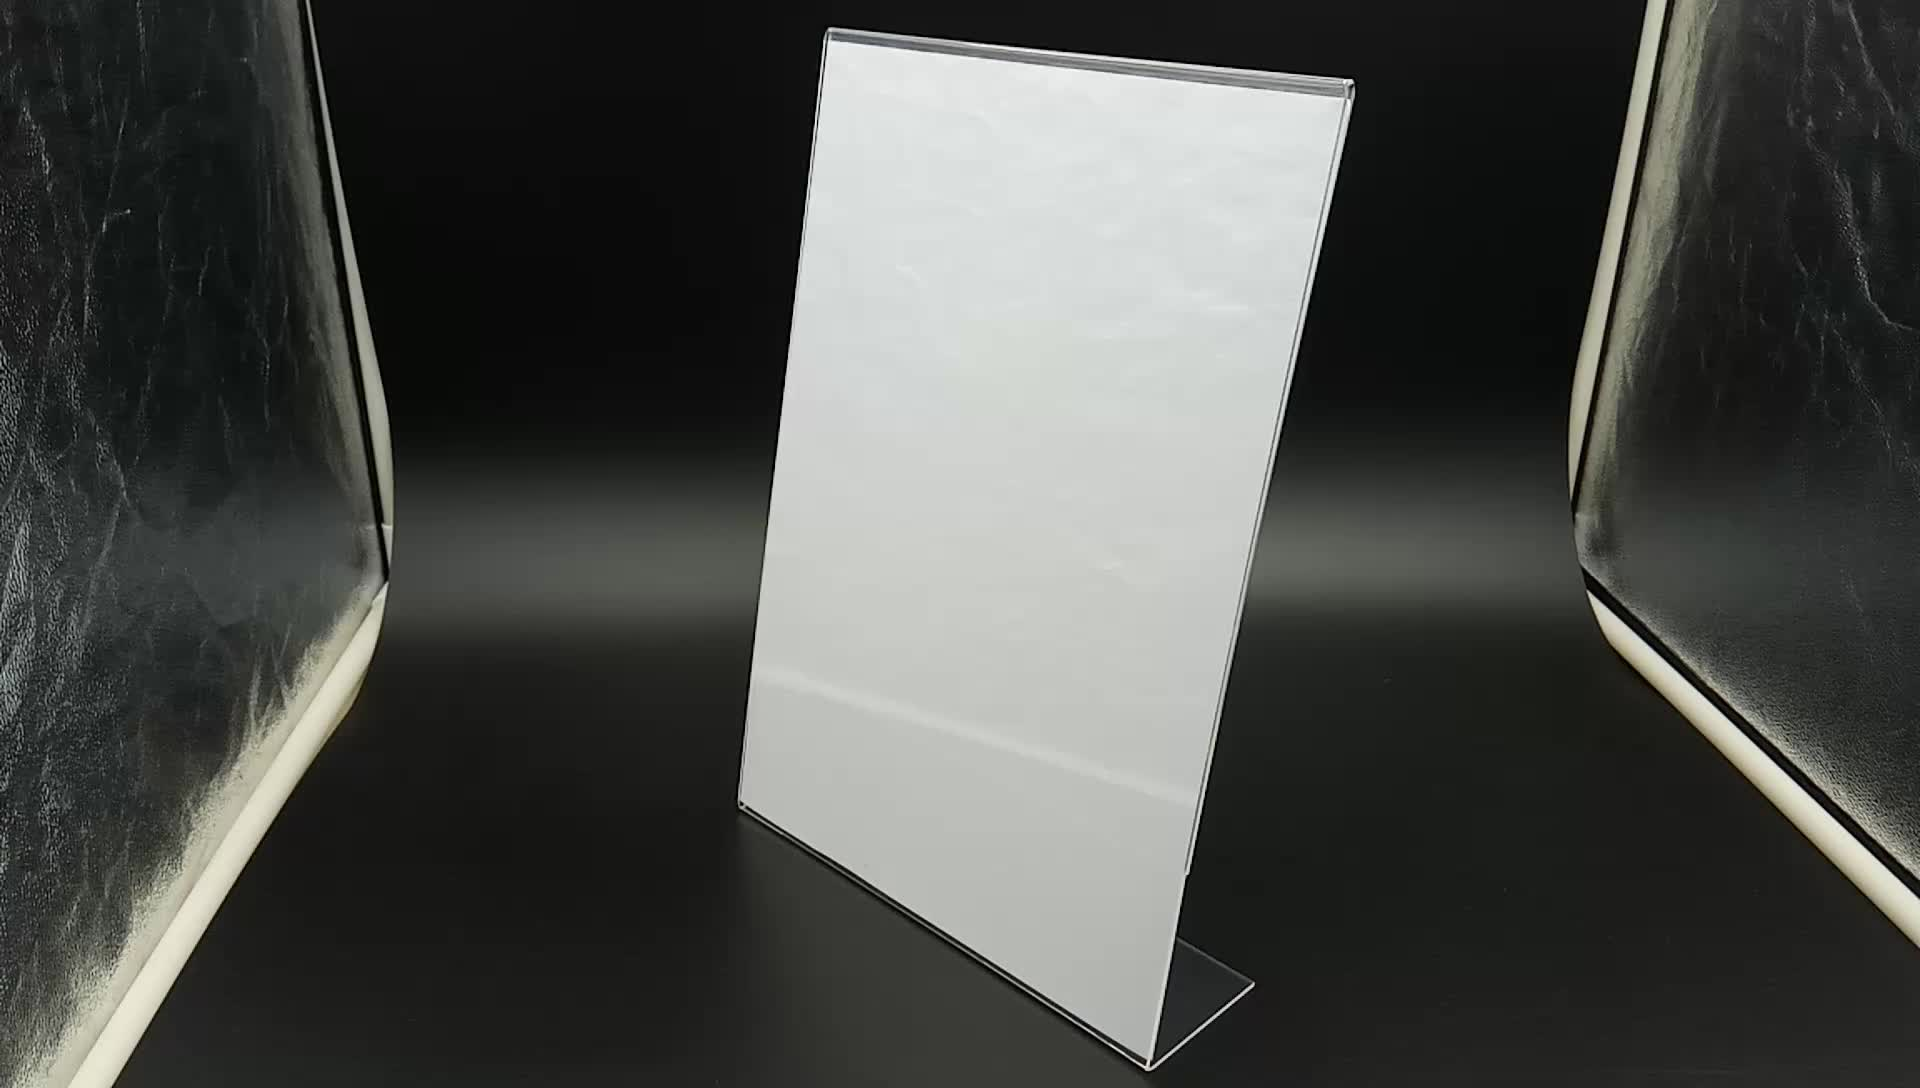 Slant L shape acrylic plexiglass sign holder for A4 size paper